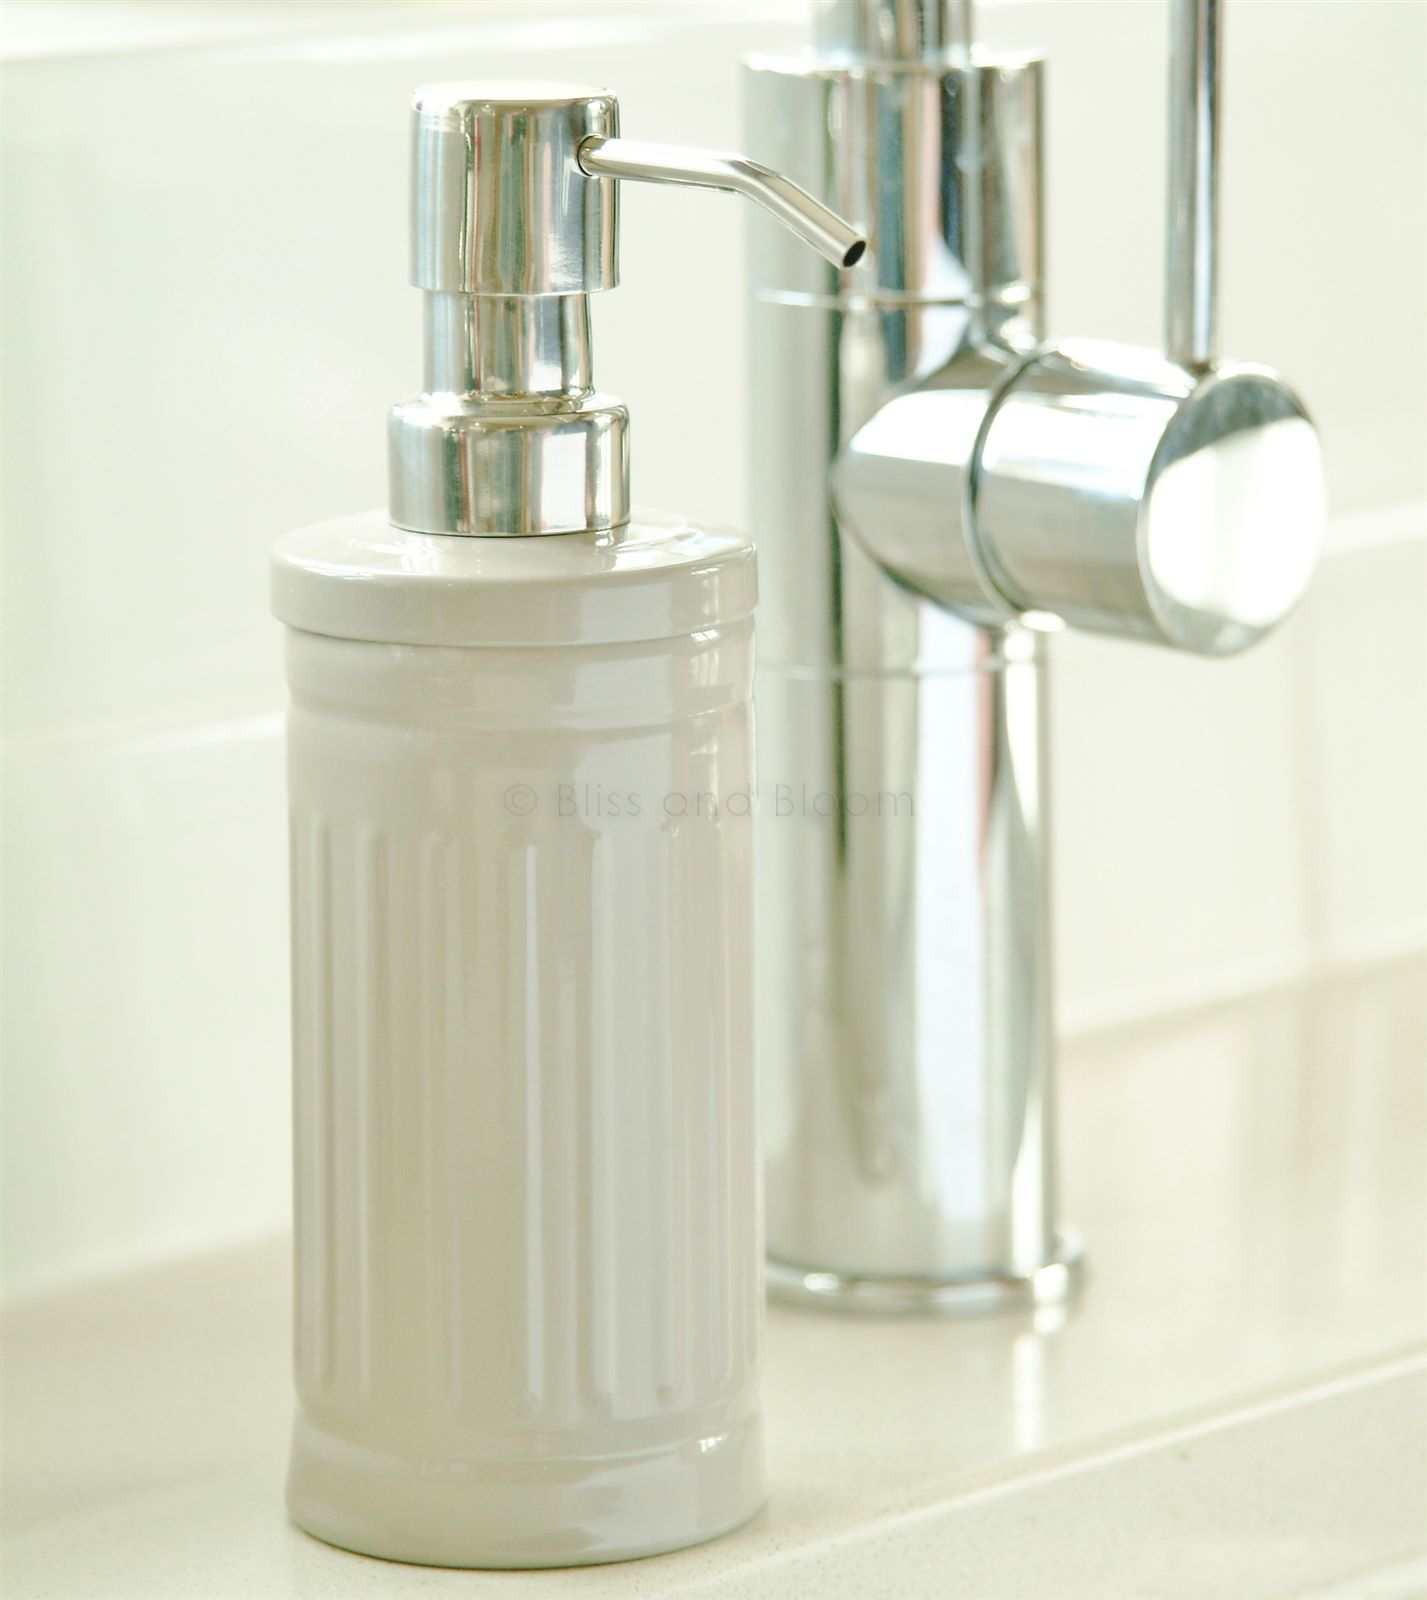 Stylish Soap Dispenser Soap Dispenser Taupe Bliss And Bloom Ltd